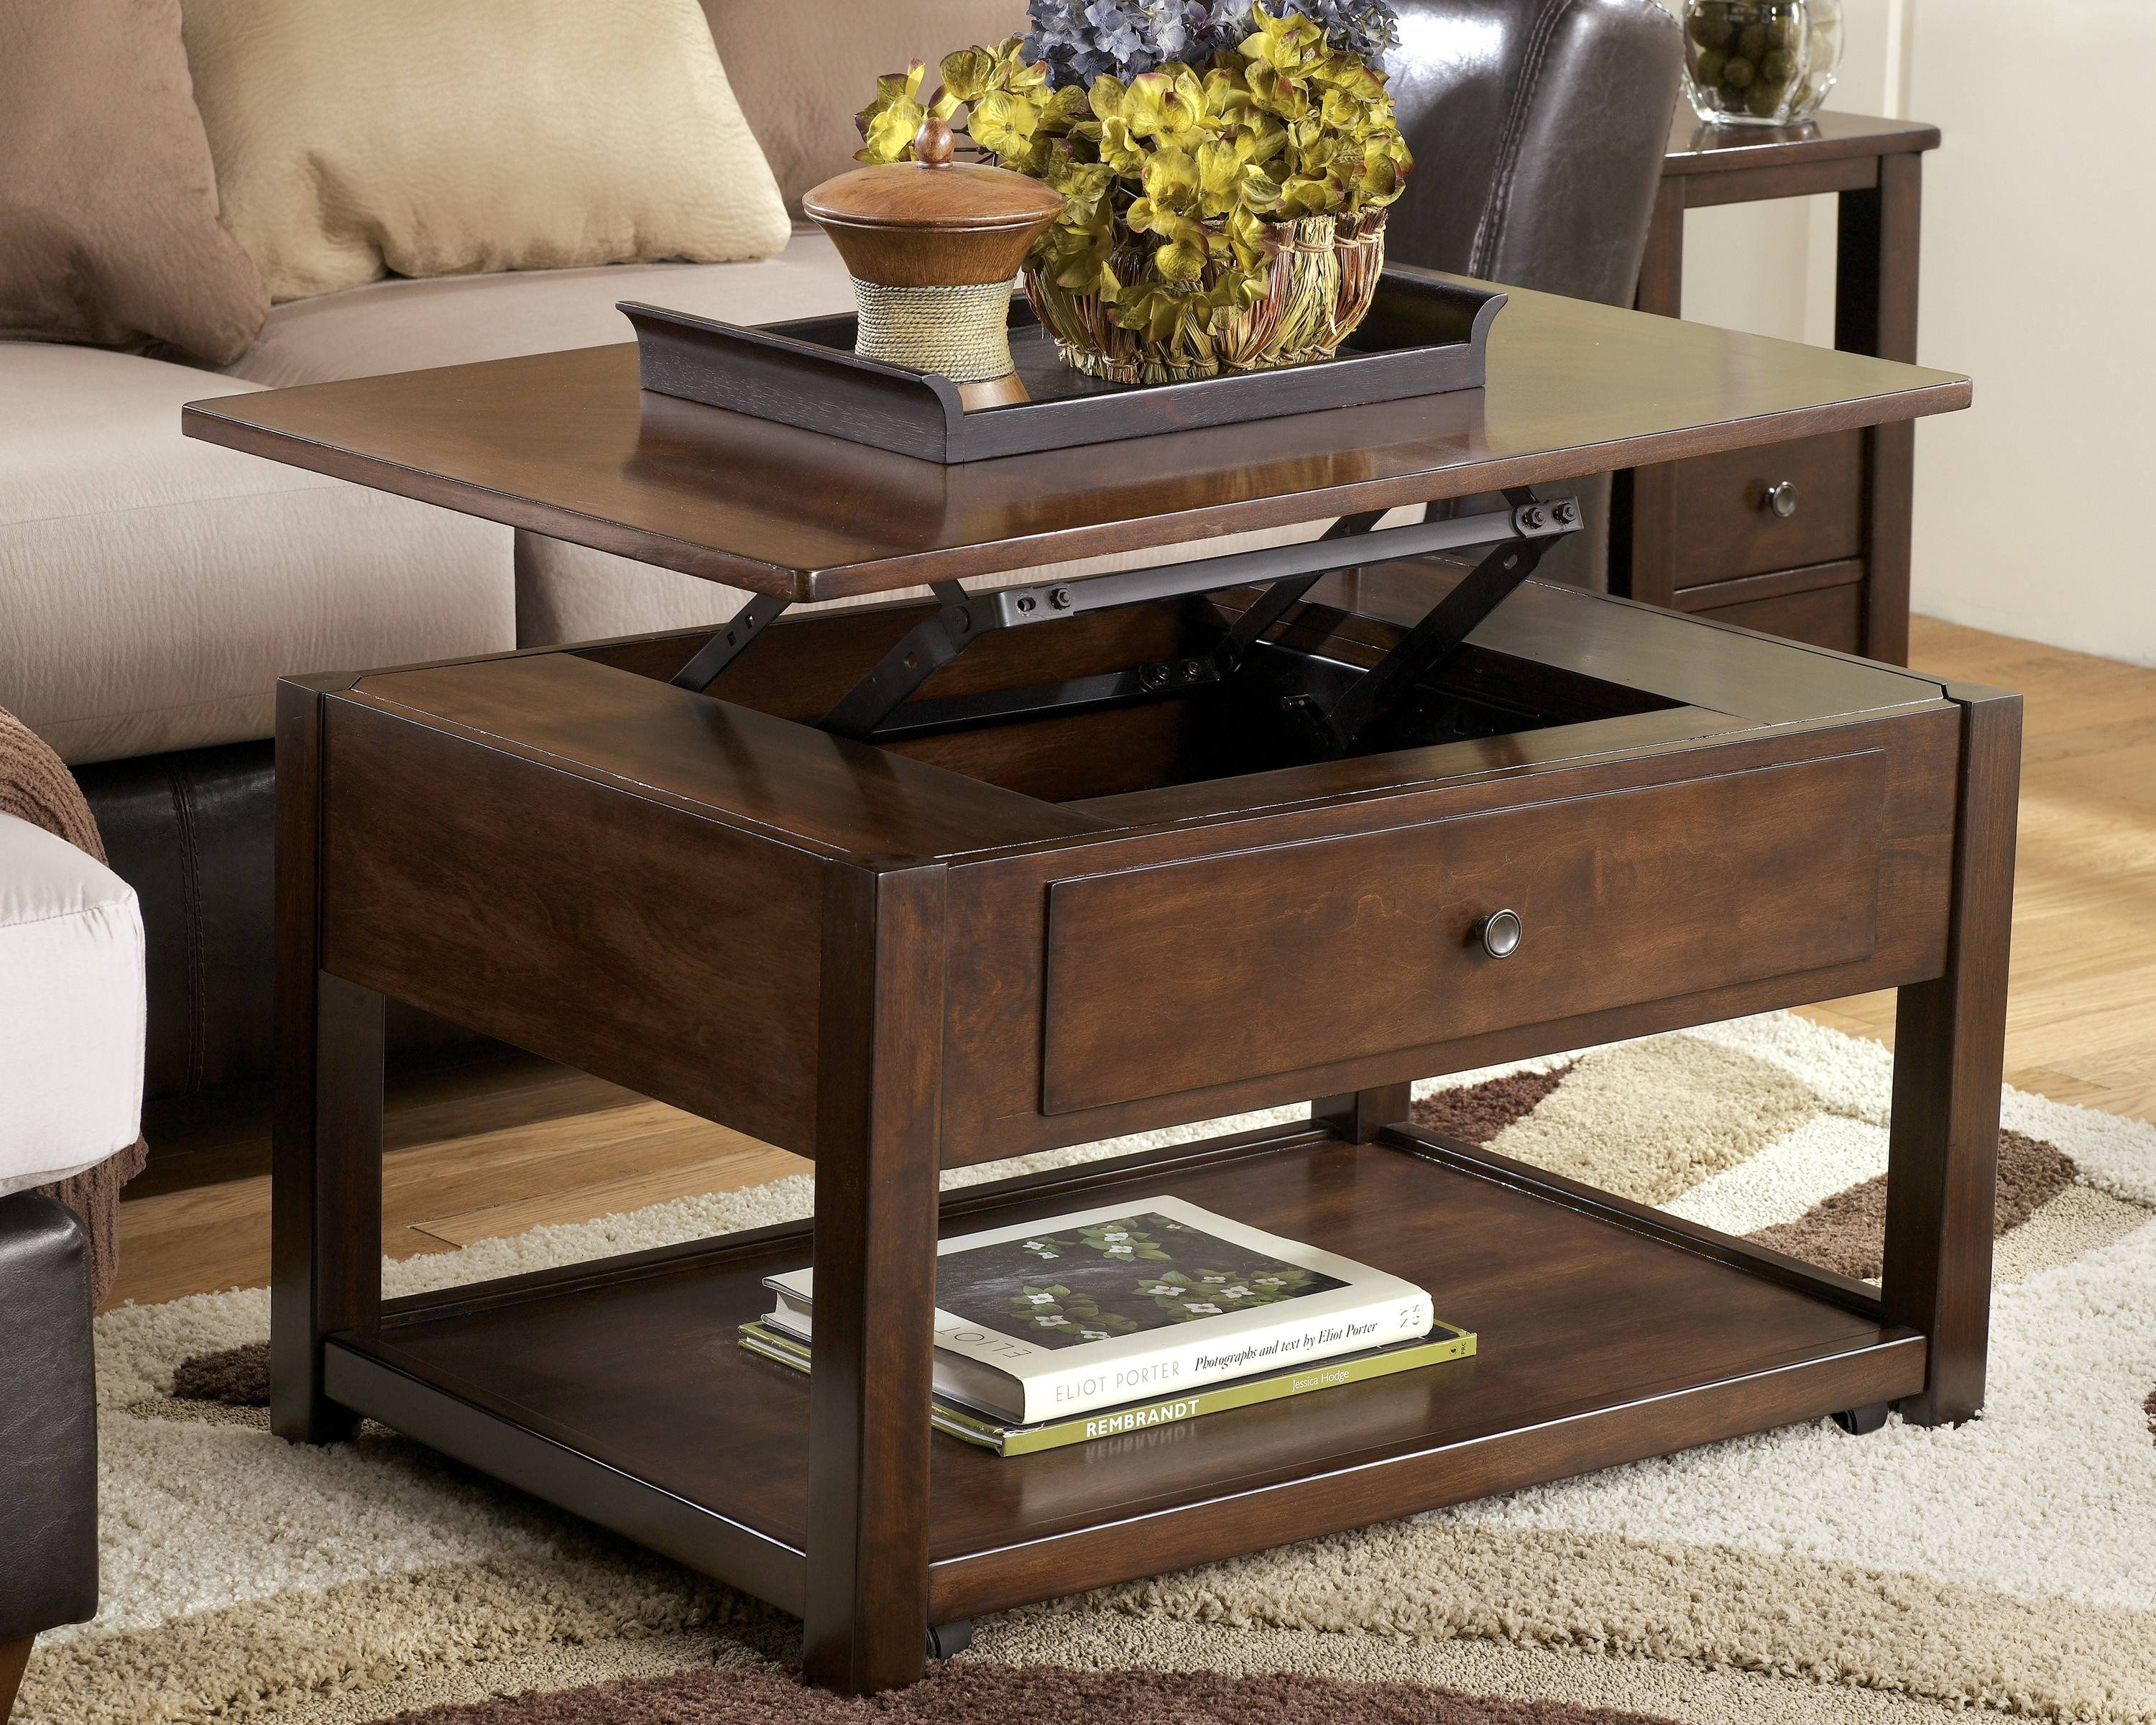 Adcock Furniture – Clearance Furniture – Georgia | Tehranmix For Small Coffee Tables With Storage (View 1 of 30)